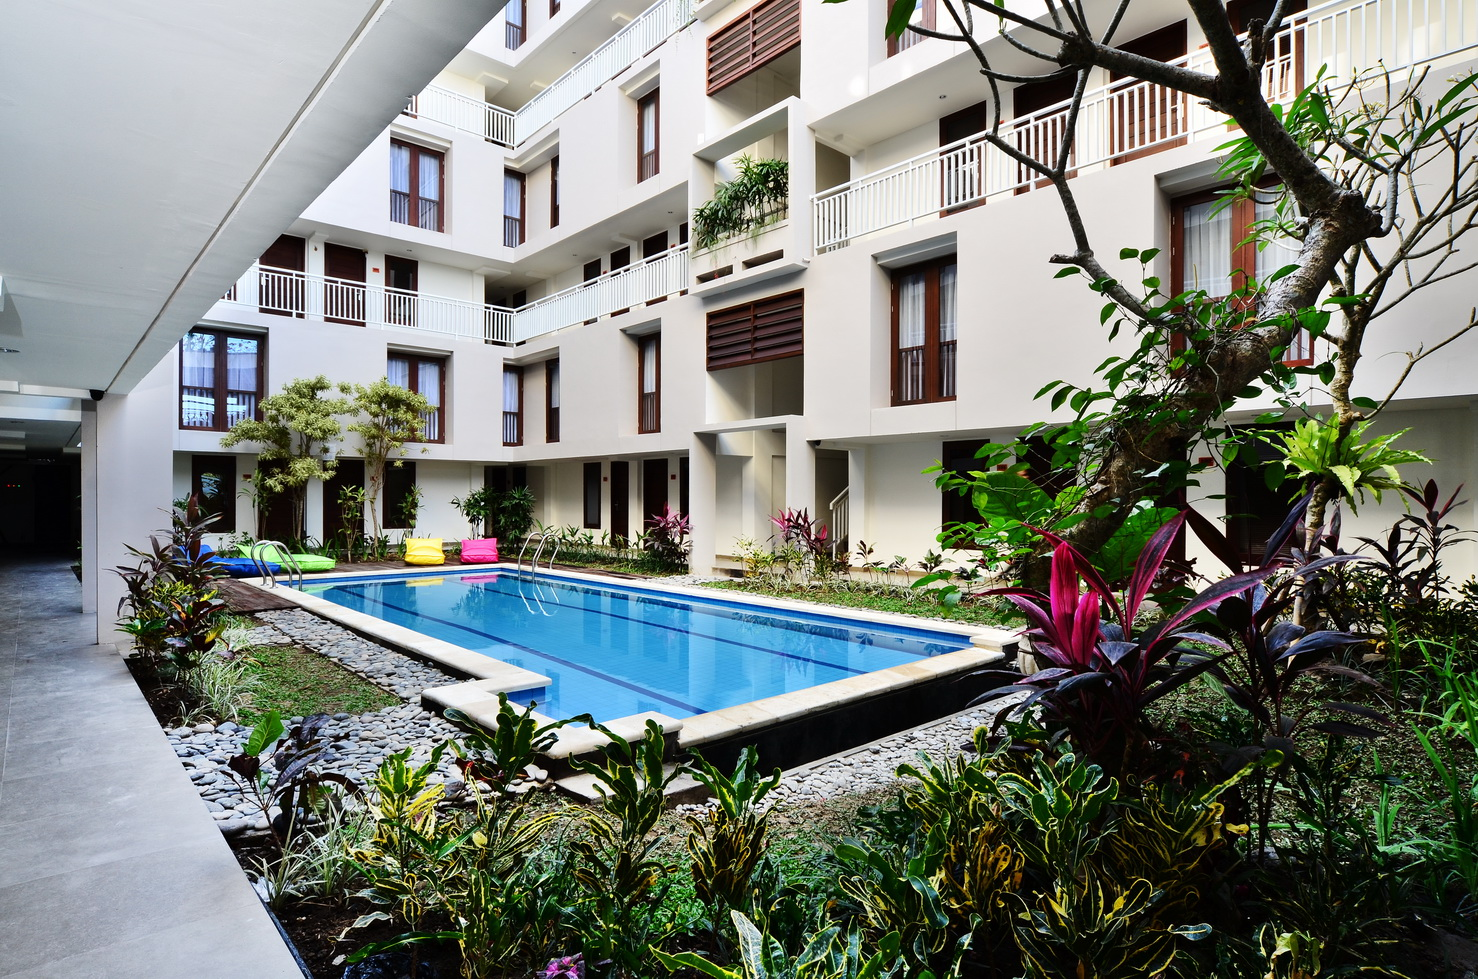 Studio Apartment Building studio apartment building for sale in legian with easy access to